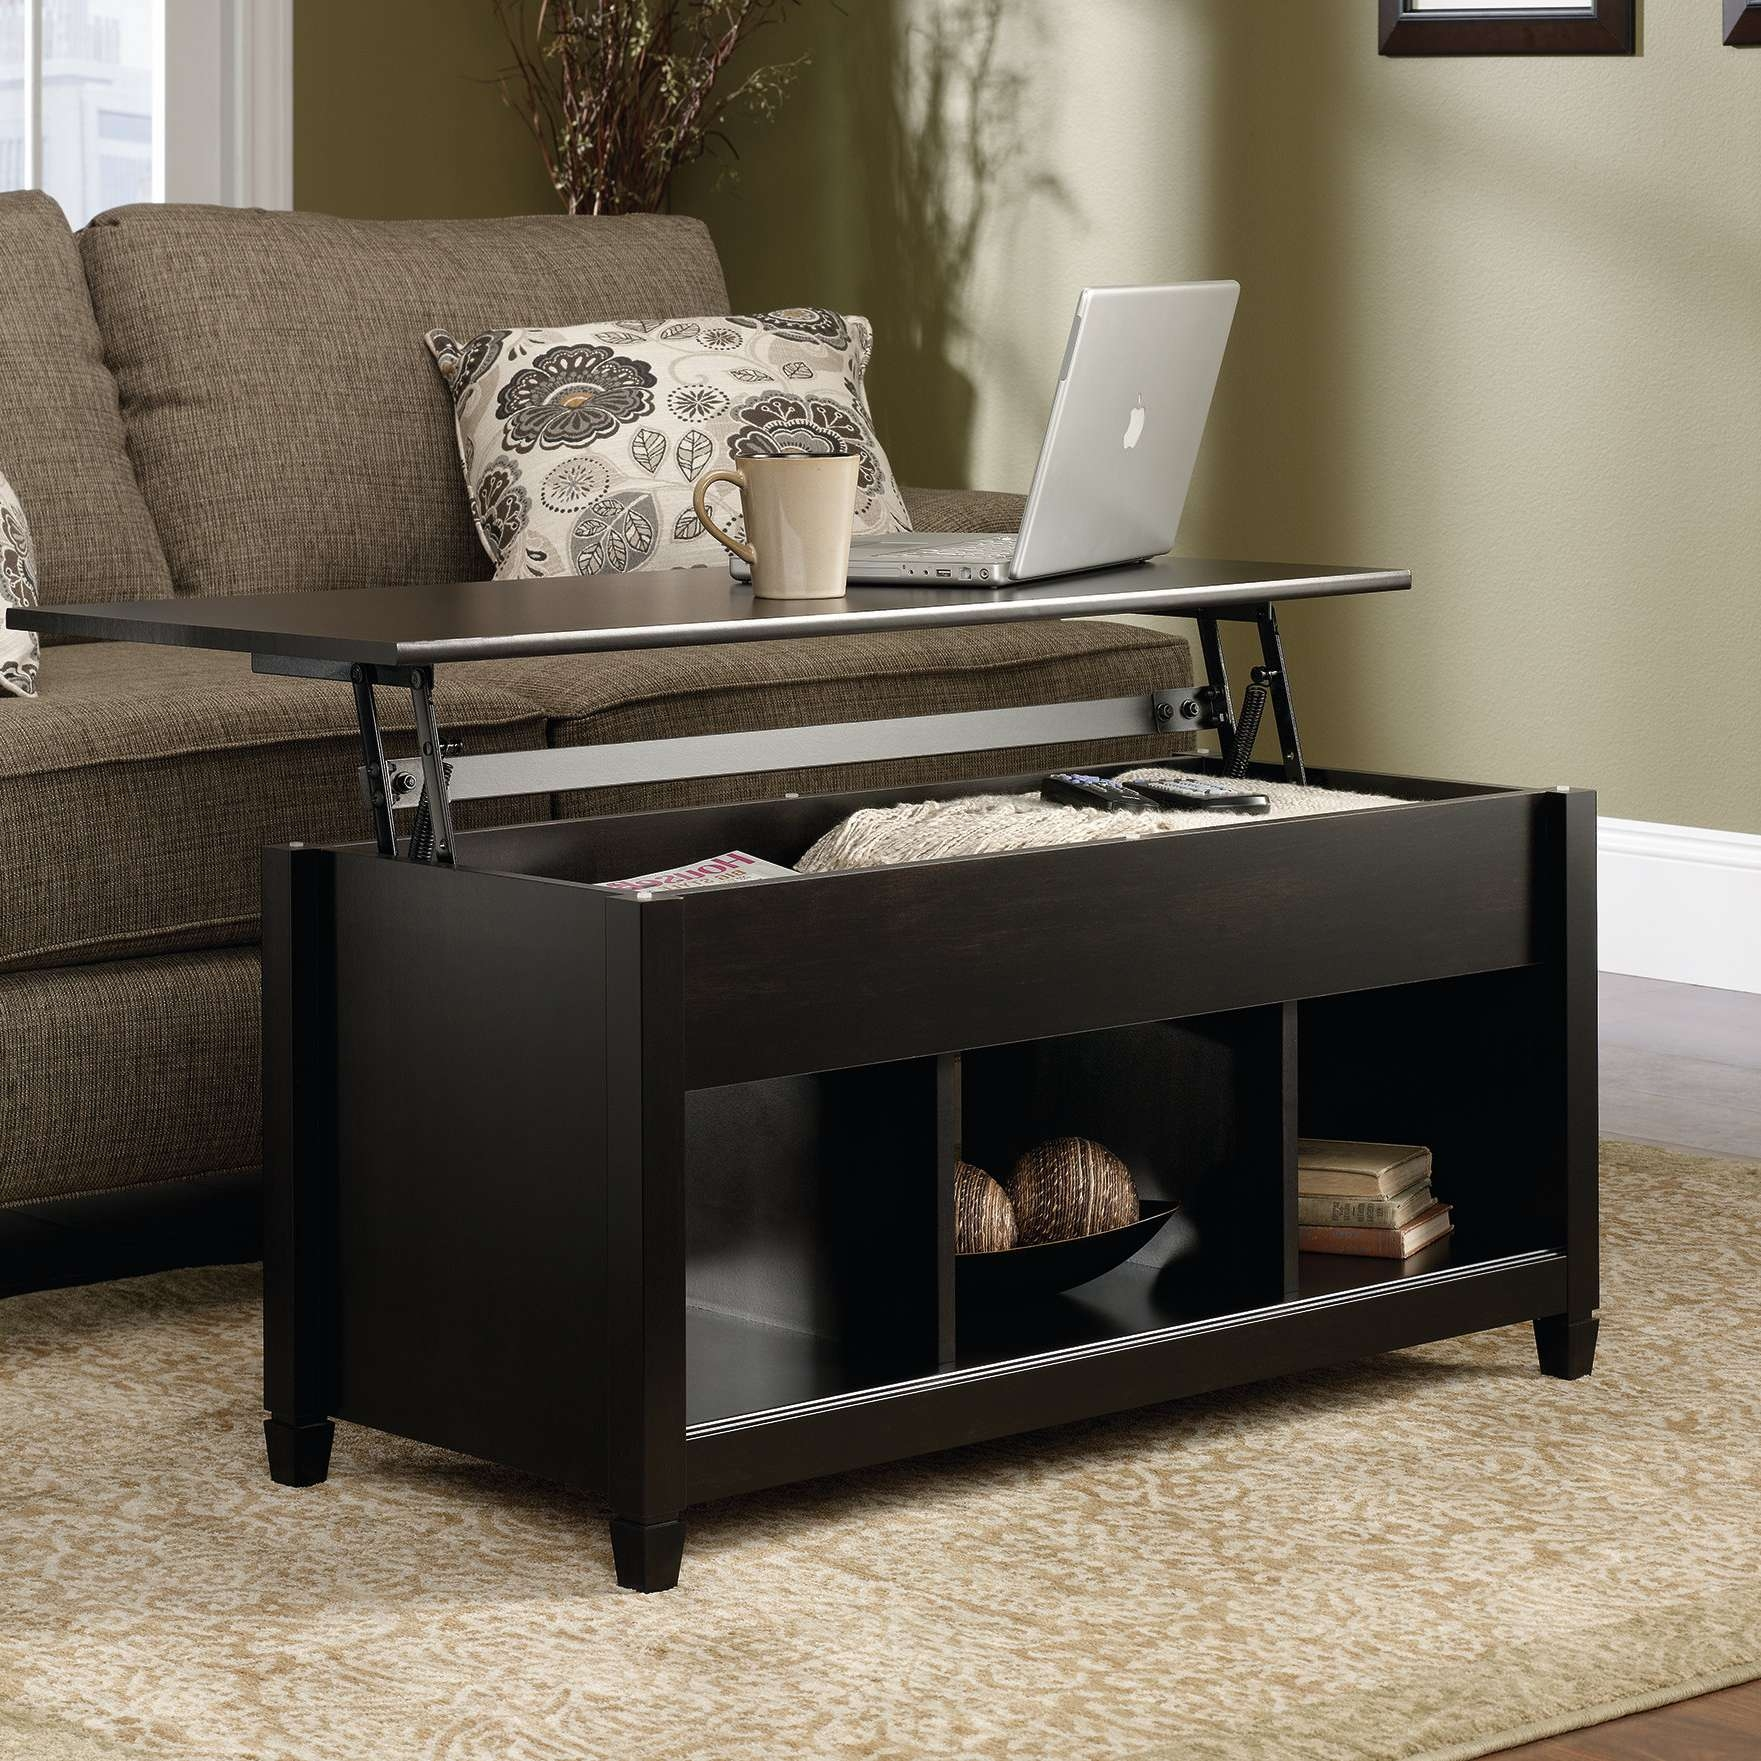 Lift Top Coffee Tables You'll Love (View 15 of 20)